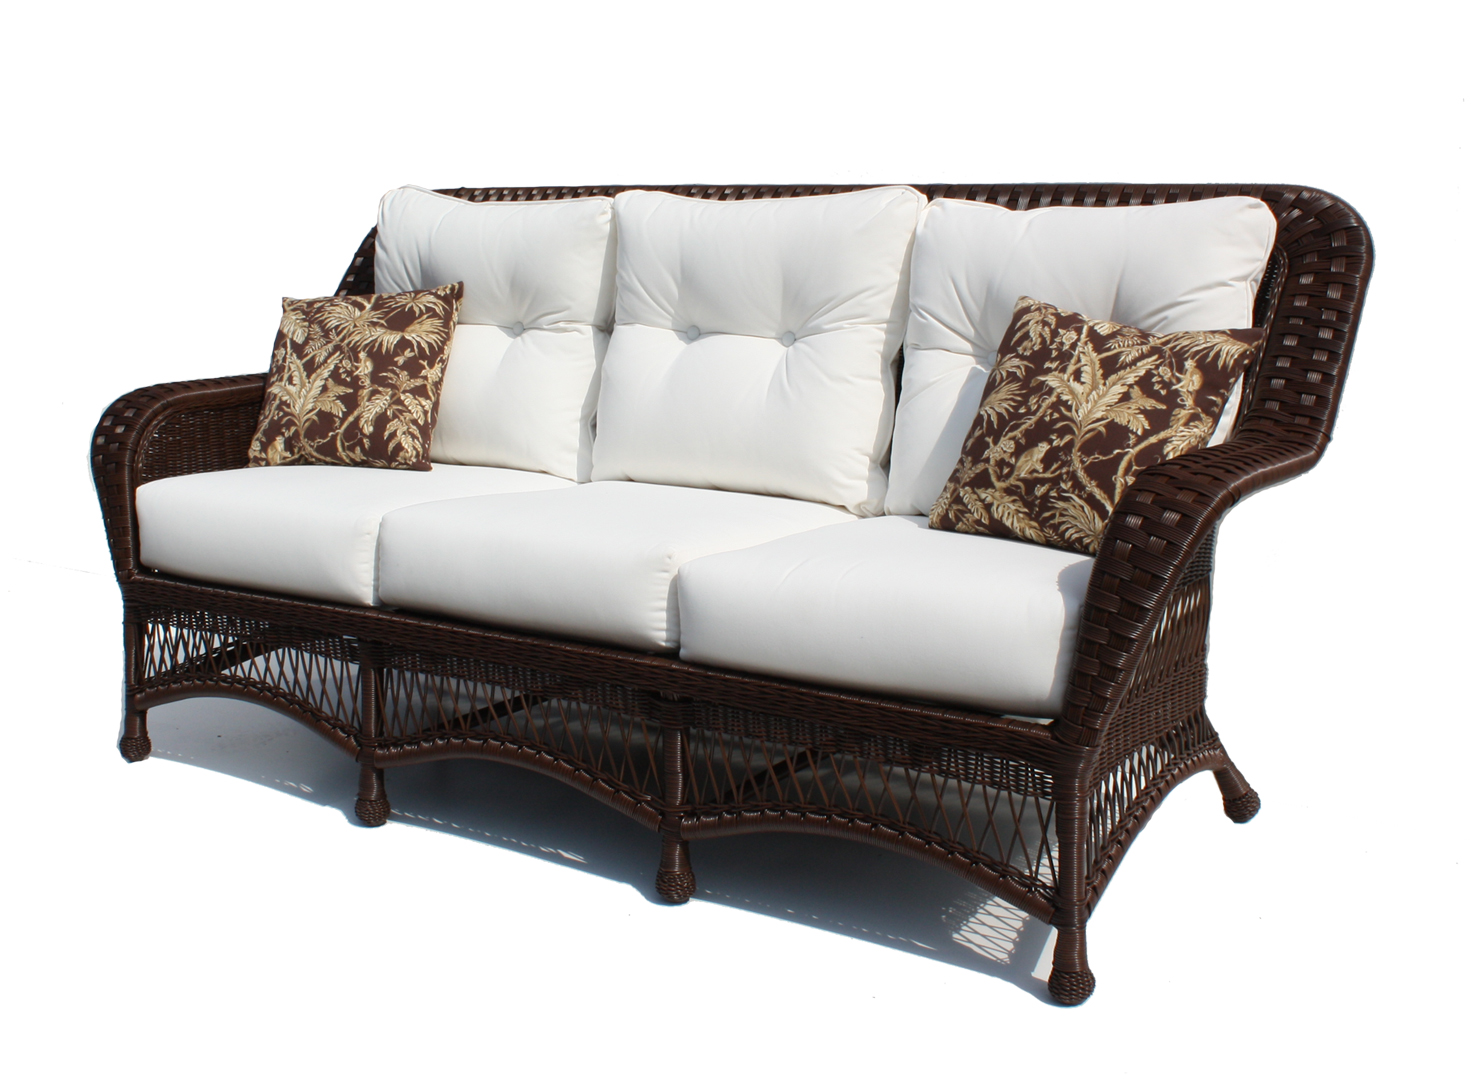 spring haven brown all weather wicker patio sofa clean microfiber with alcohol outdoor furniture resin